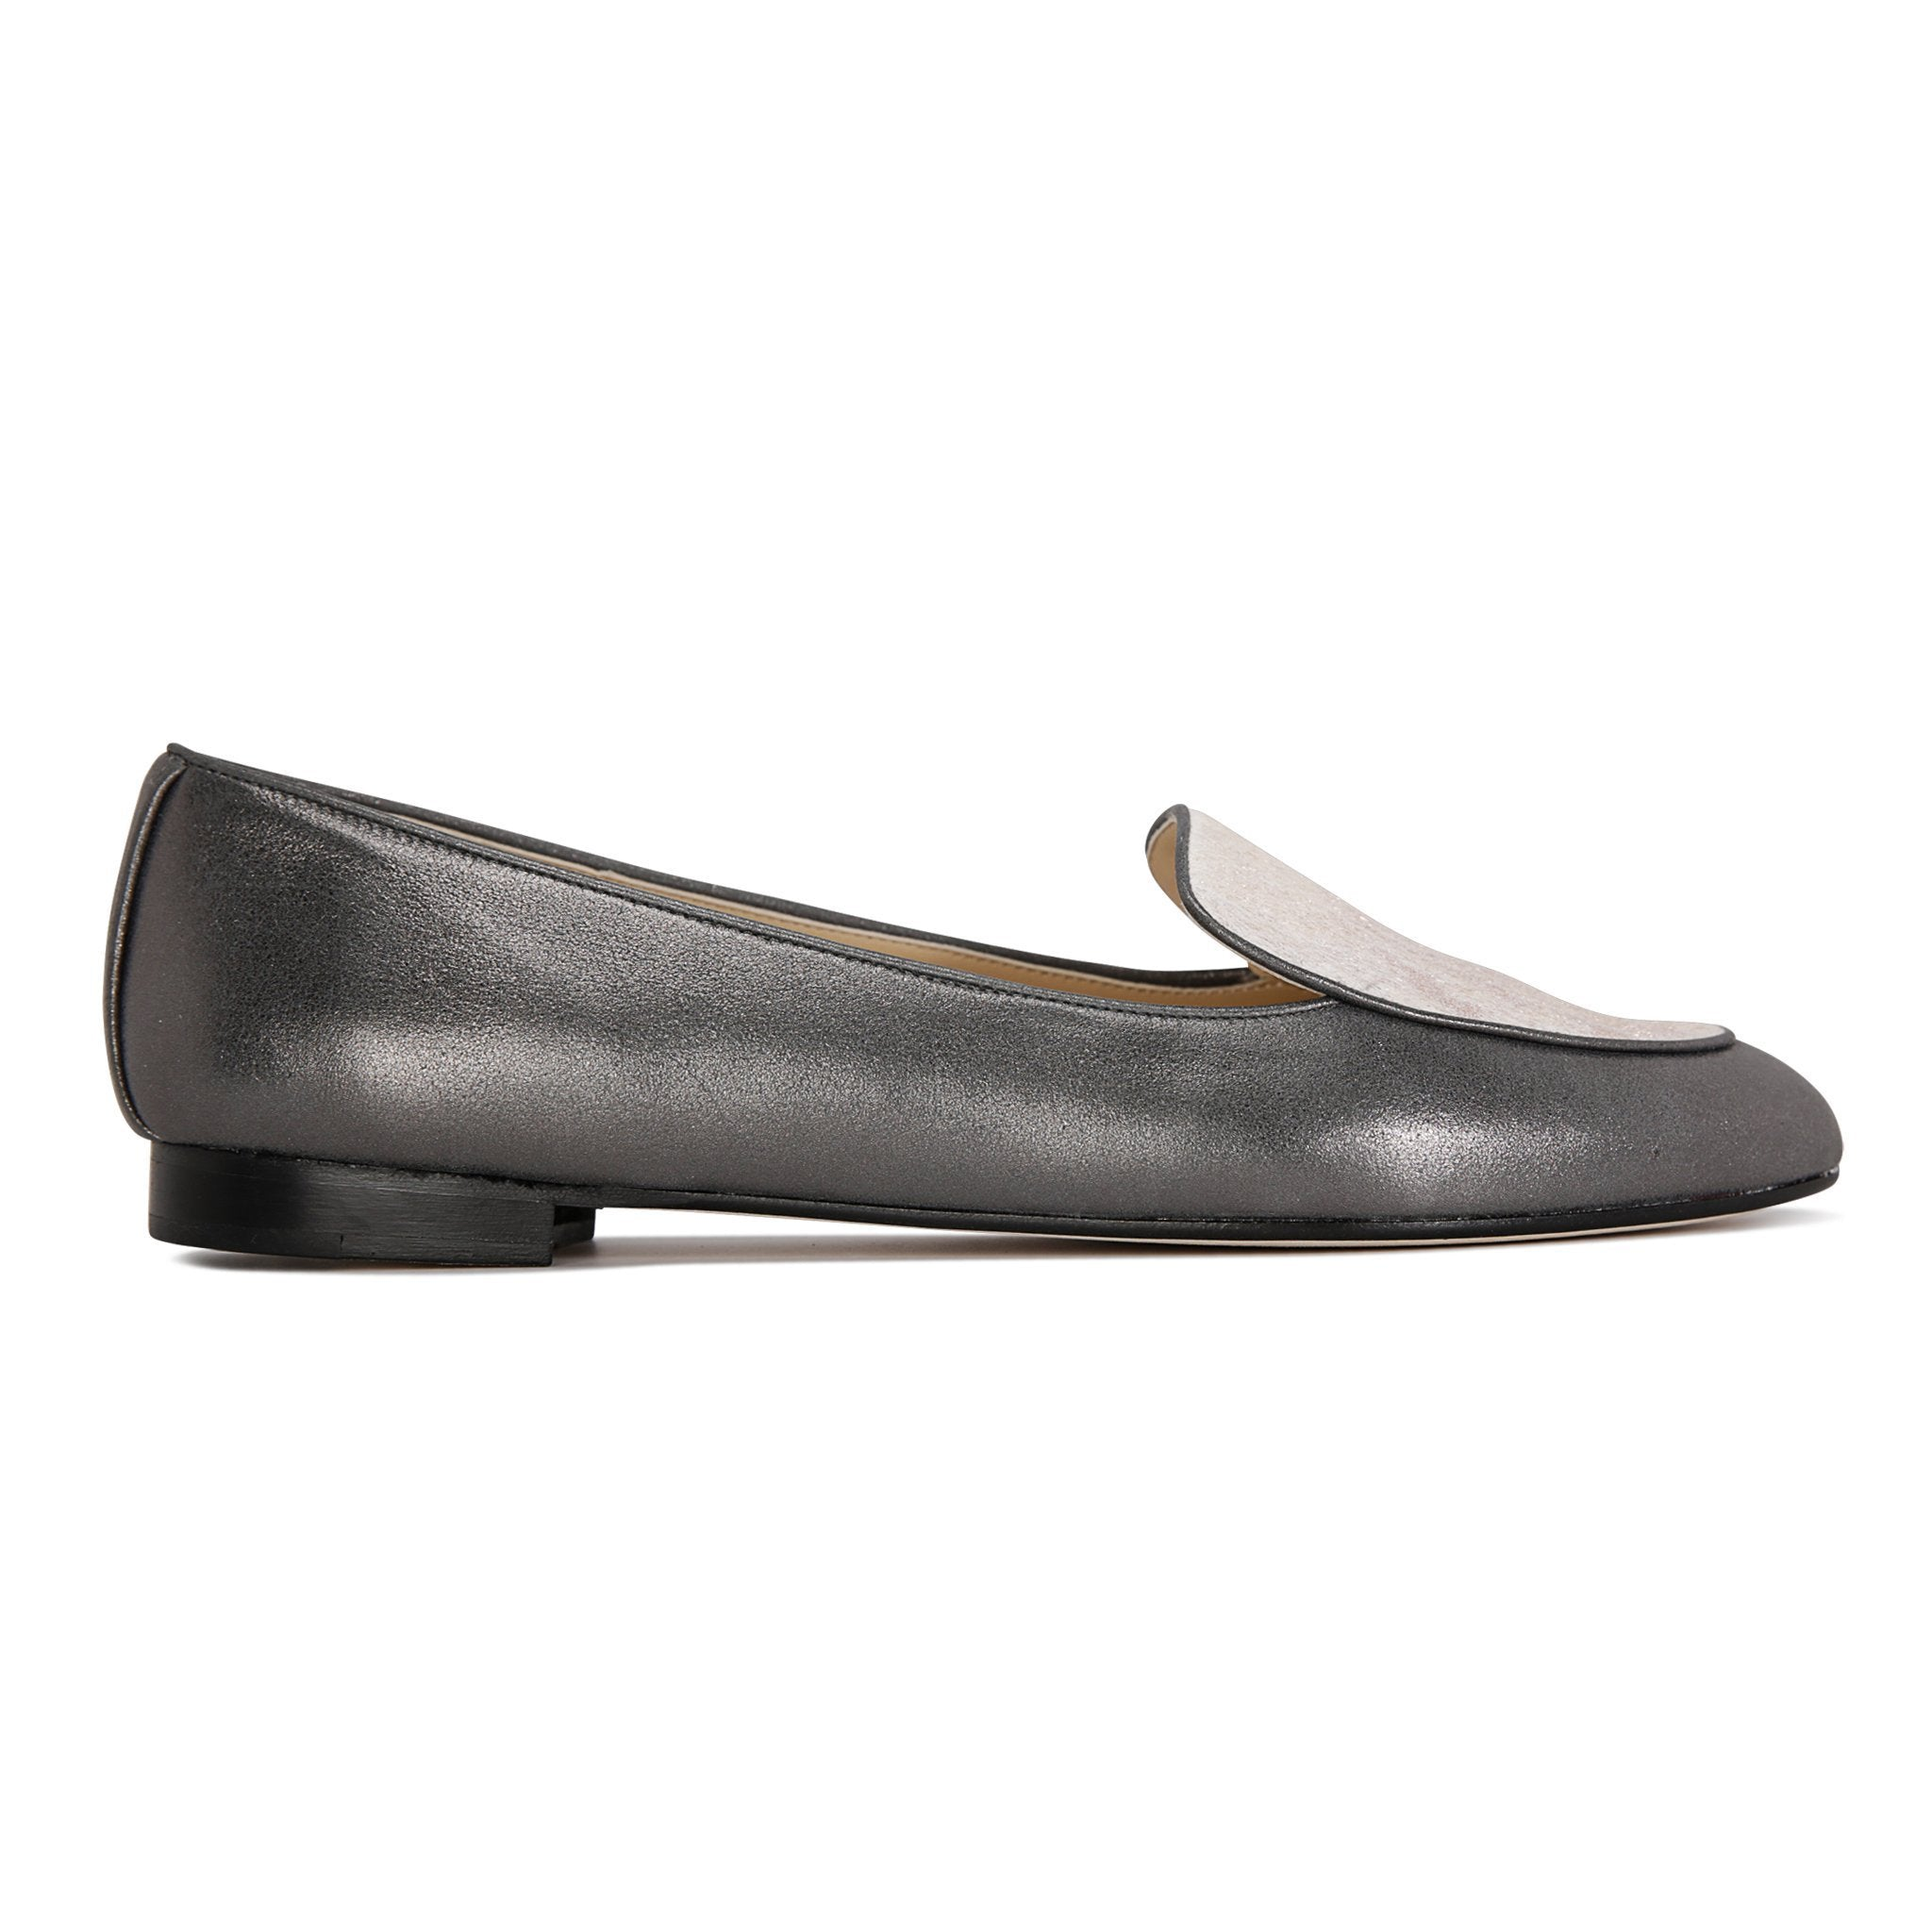 REGGIO - Burma Anthracite + Calf Hair Vintage Rose Gold, VIAJIYU - Women's Hand Made Sustainable Luxury Shoes. Made in Italy. Made to Order.